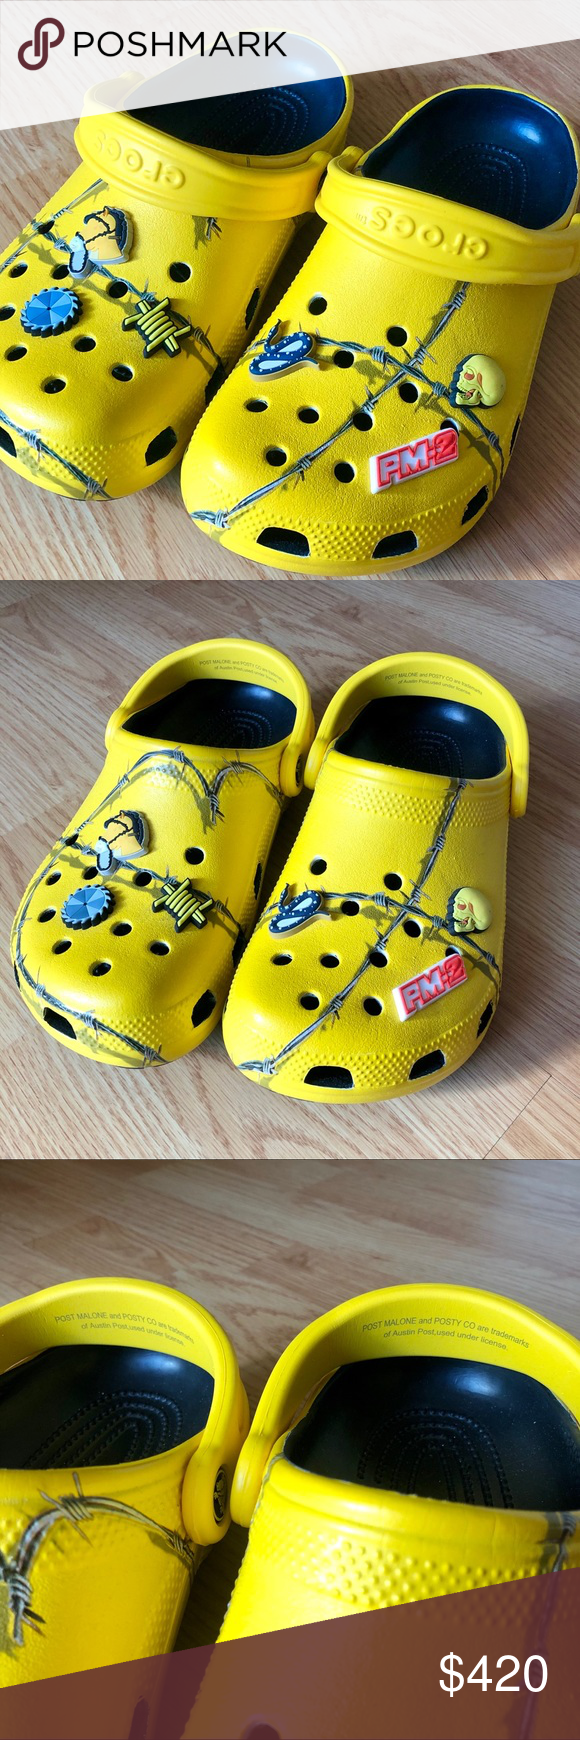 Post malone barbed wire dimitri crocs unisex (With images